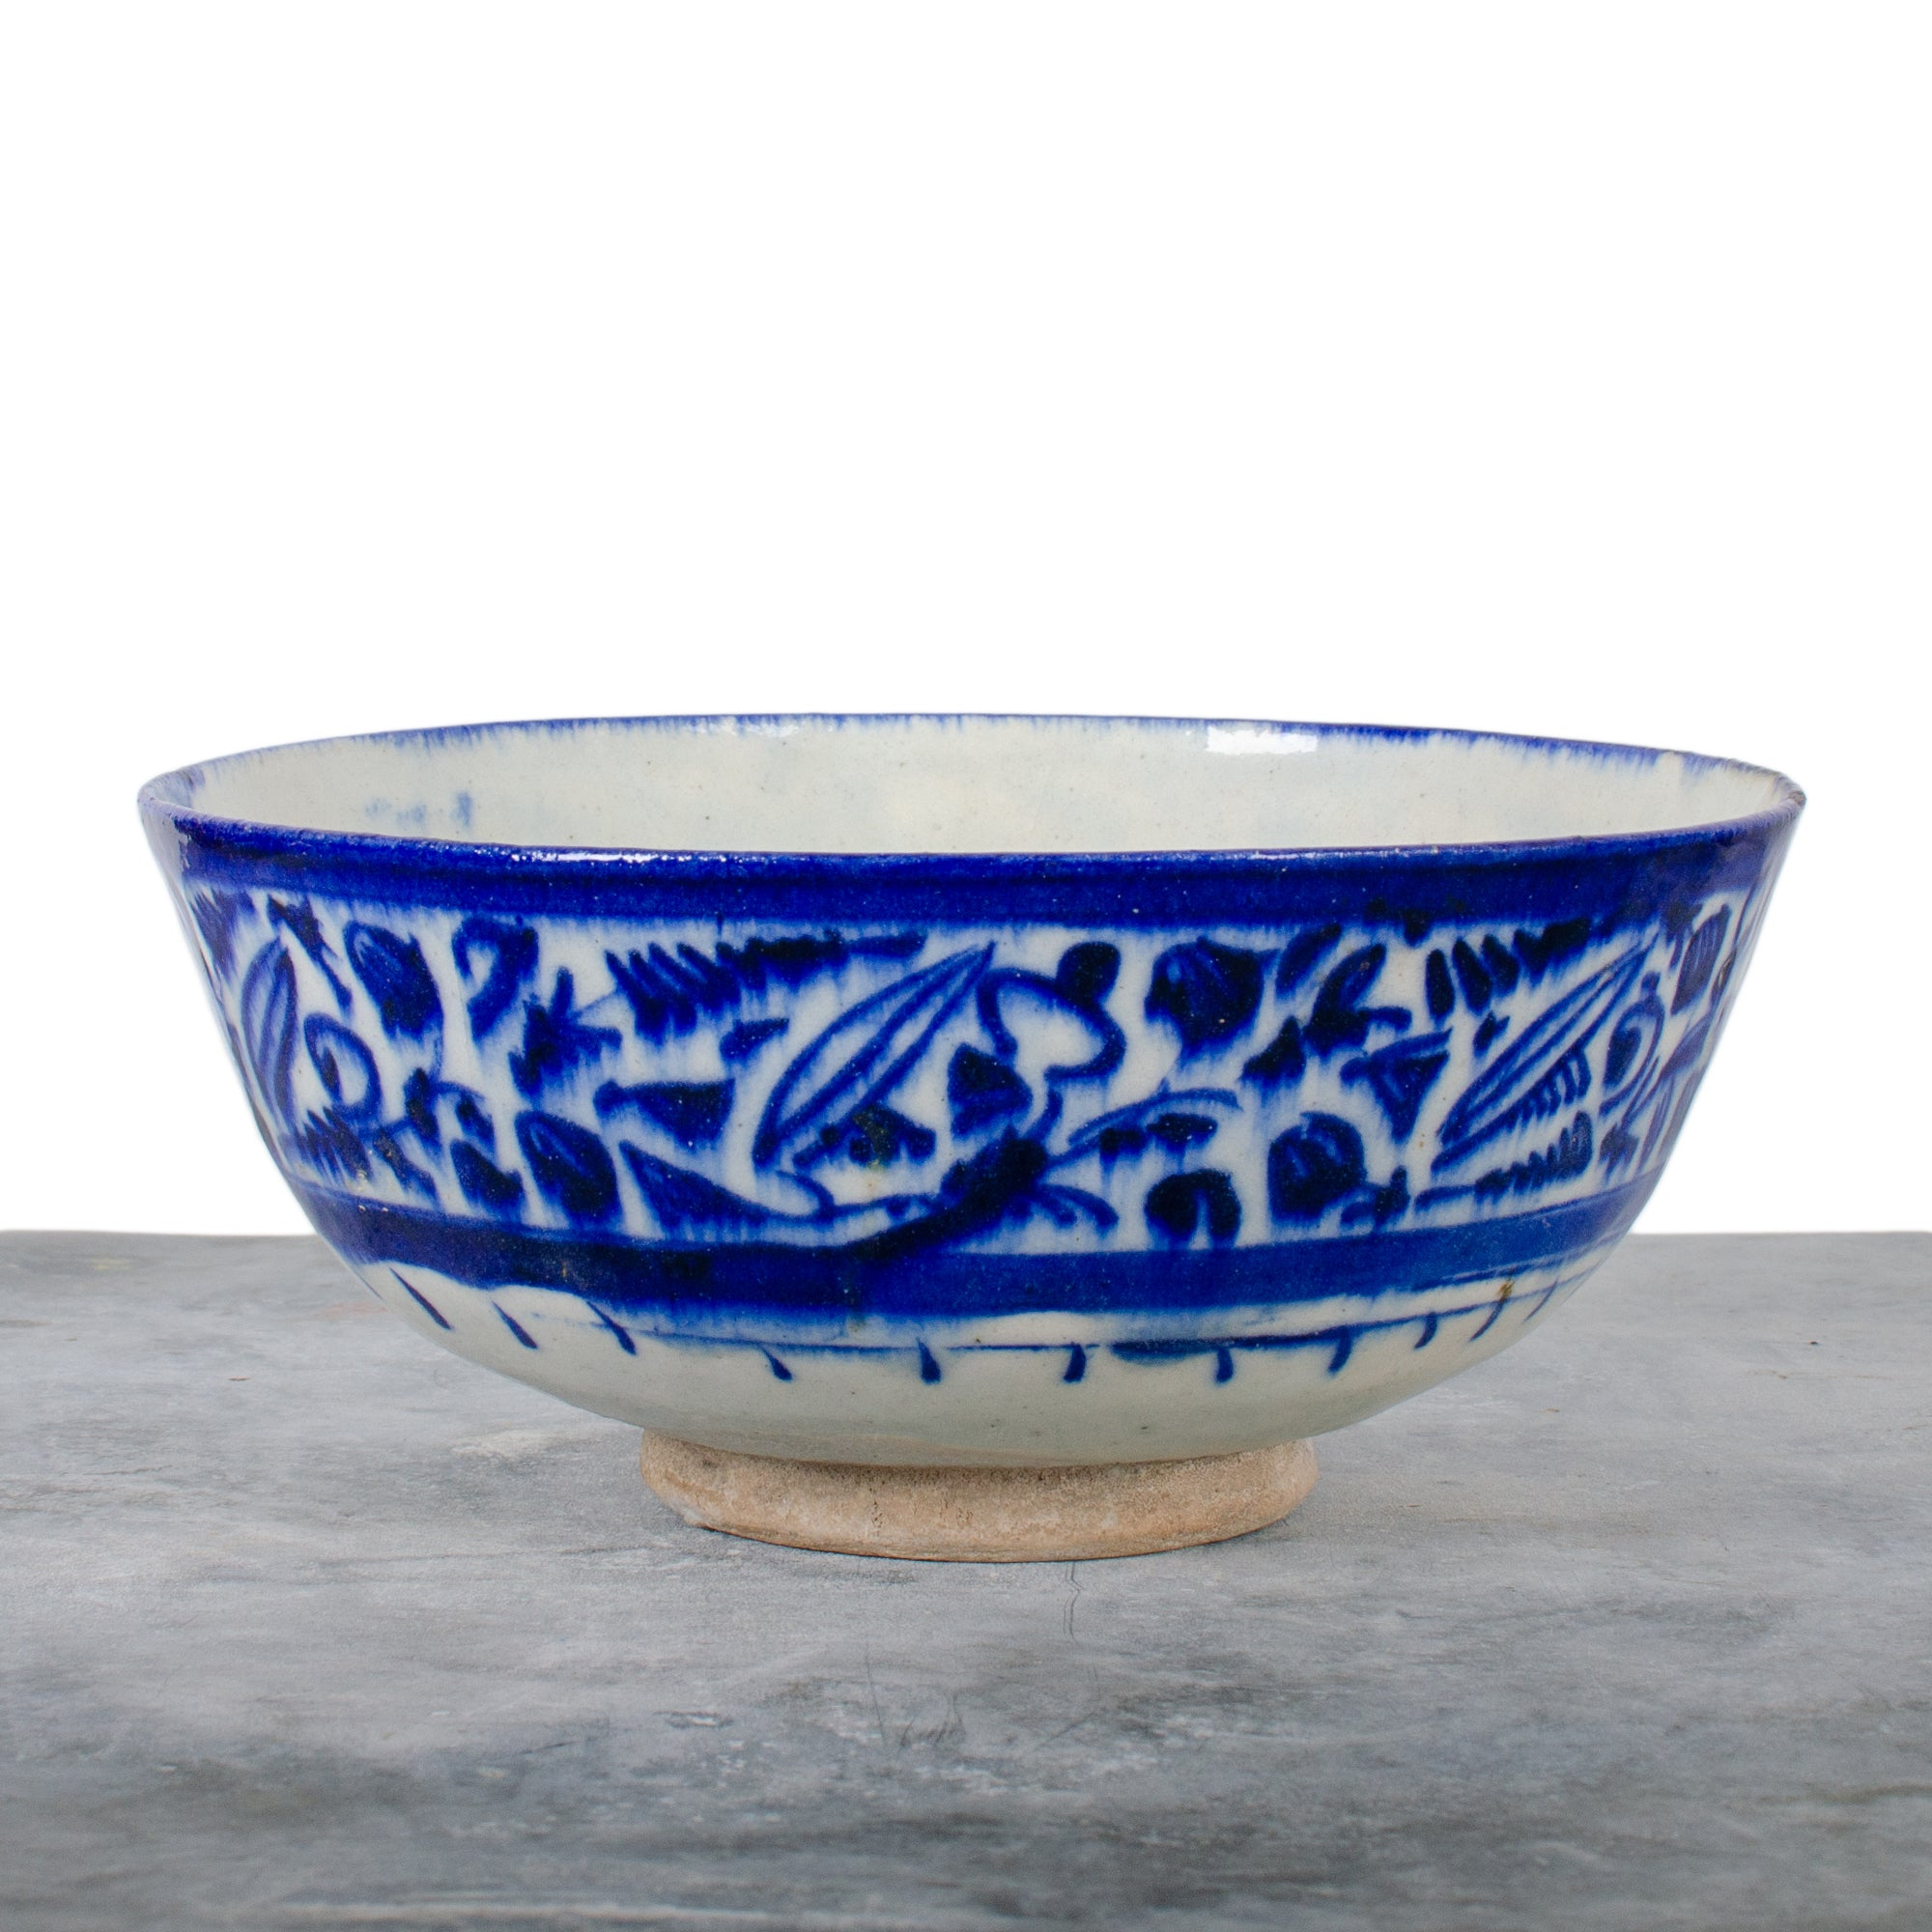 Persian Safavid Fritware Bowl, c.17th Century